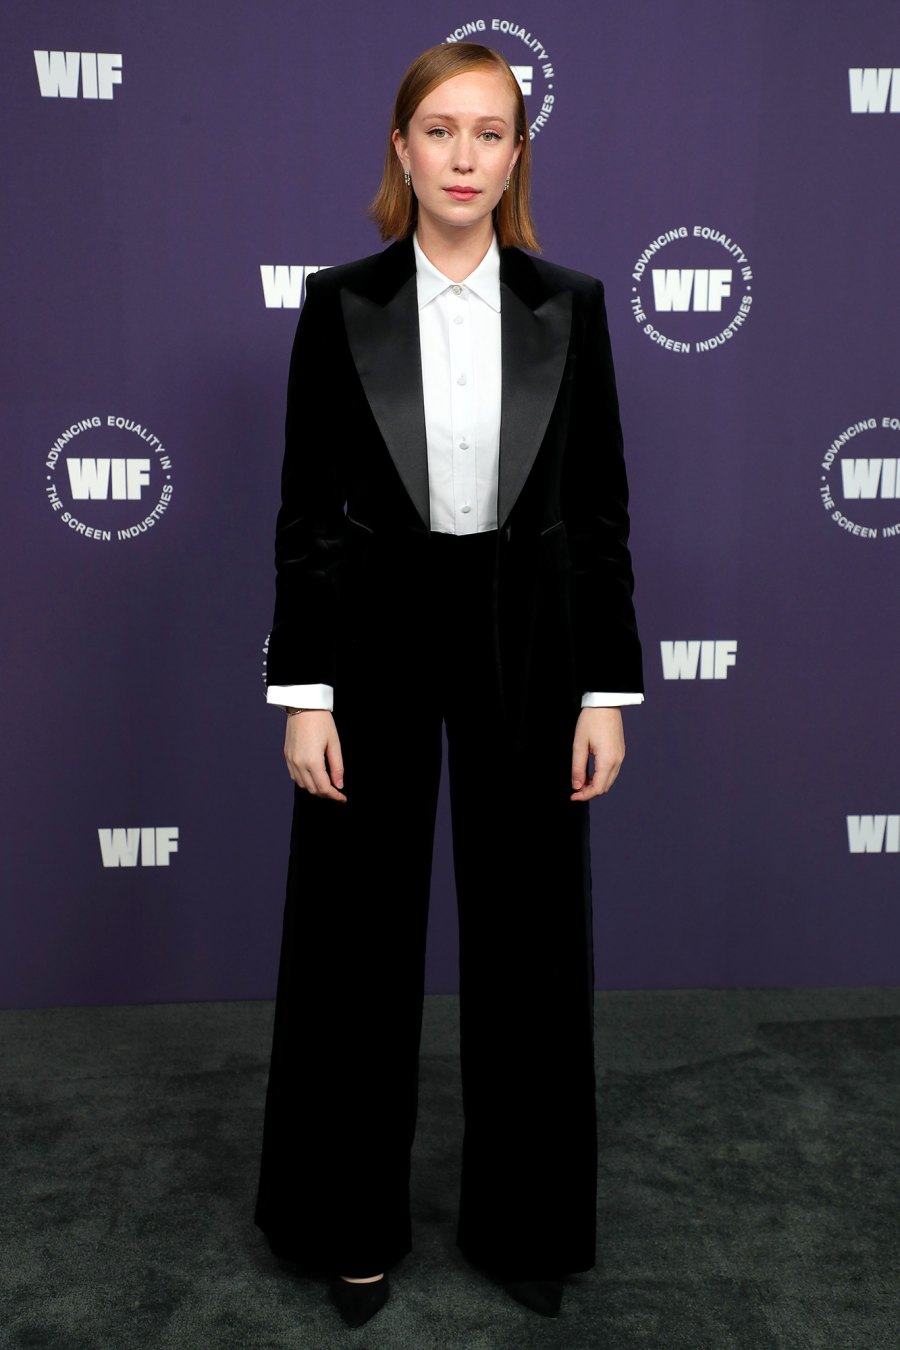 Women in Film Honors Gala Red Carpet Fashion: See What the Stars Wore